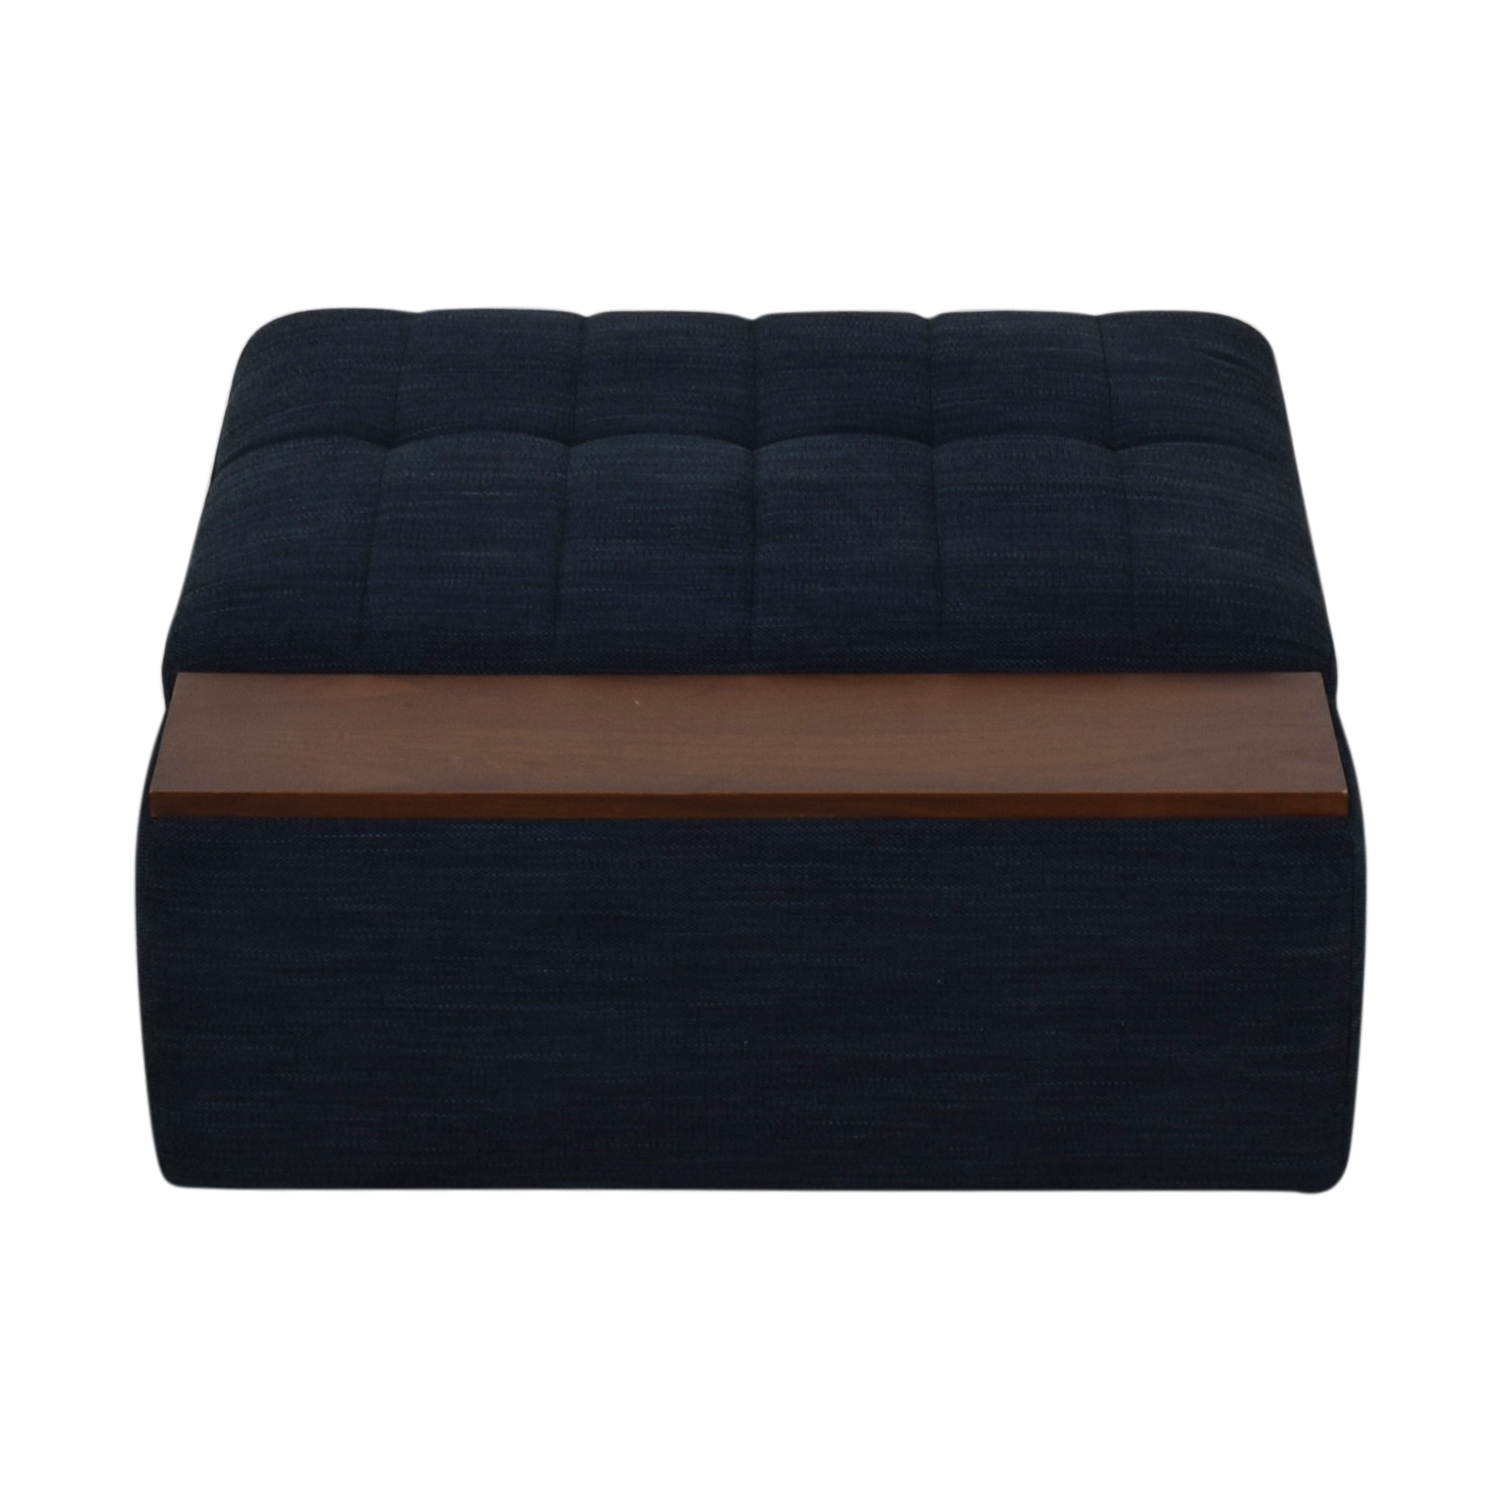 West Elm West Elm Plateau Blue Storage Ottoman With Table used